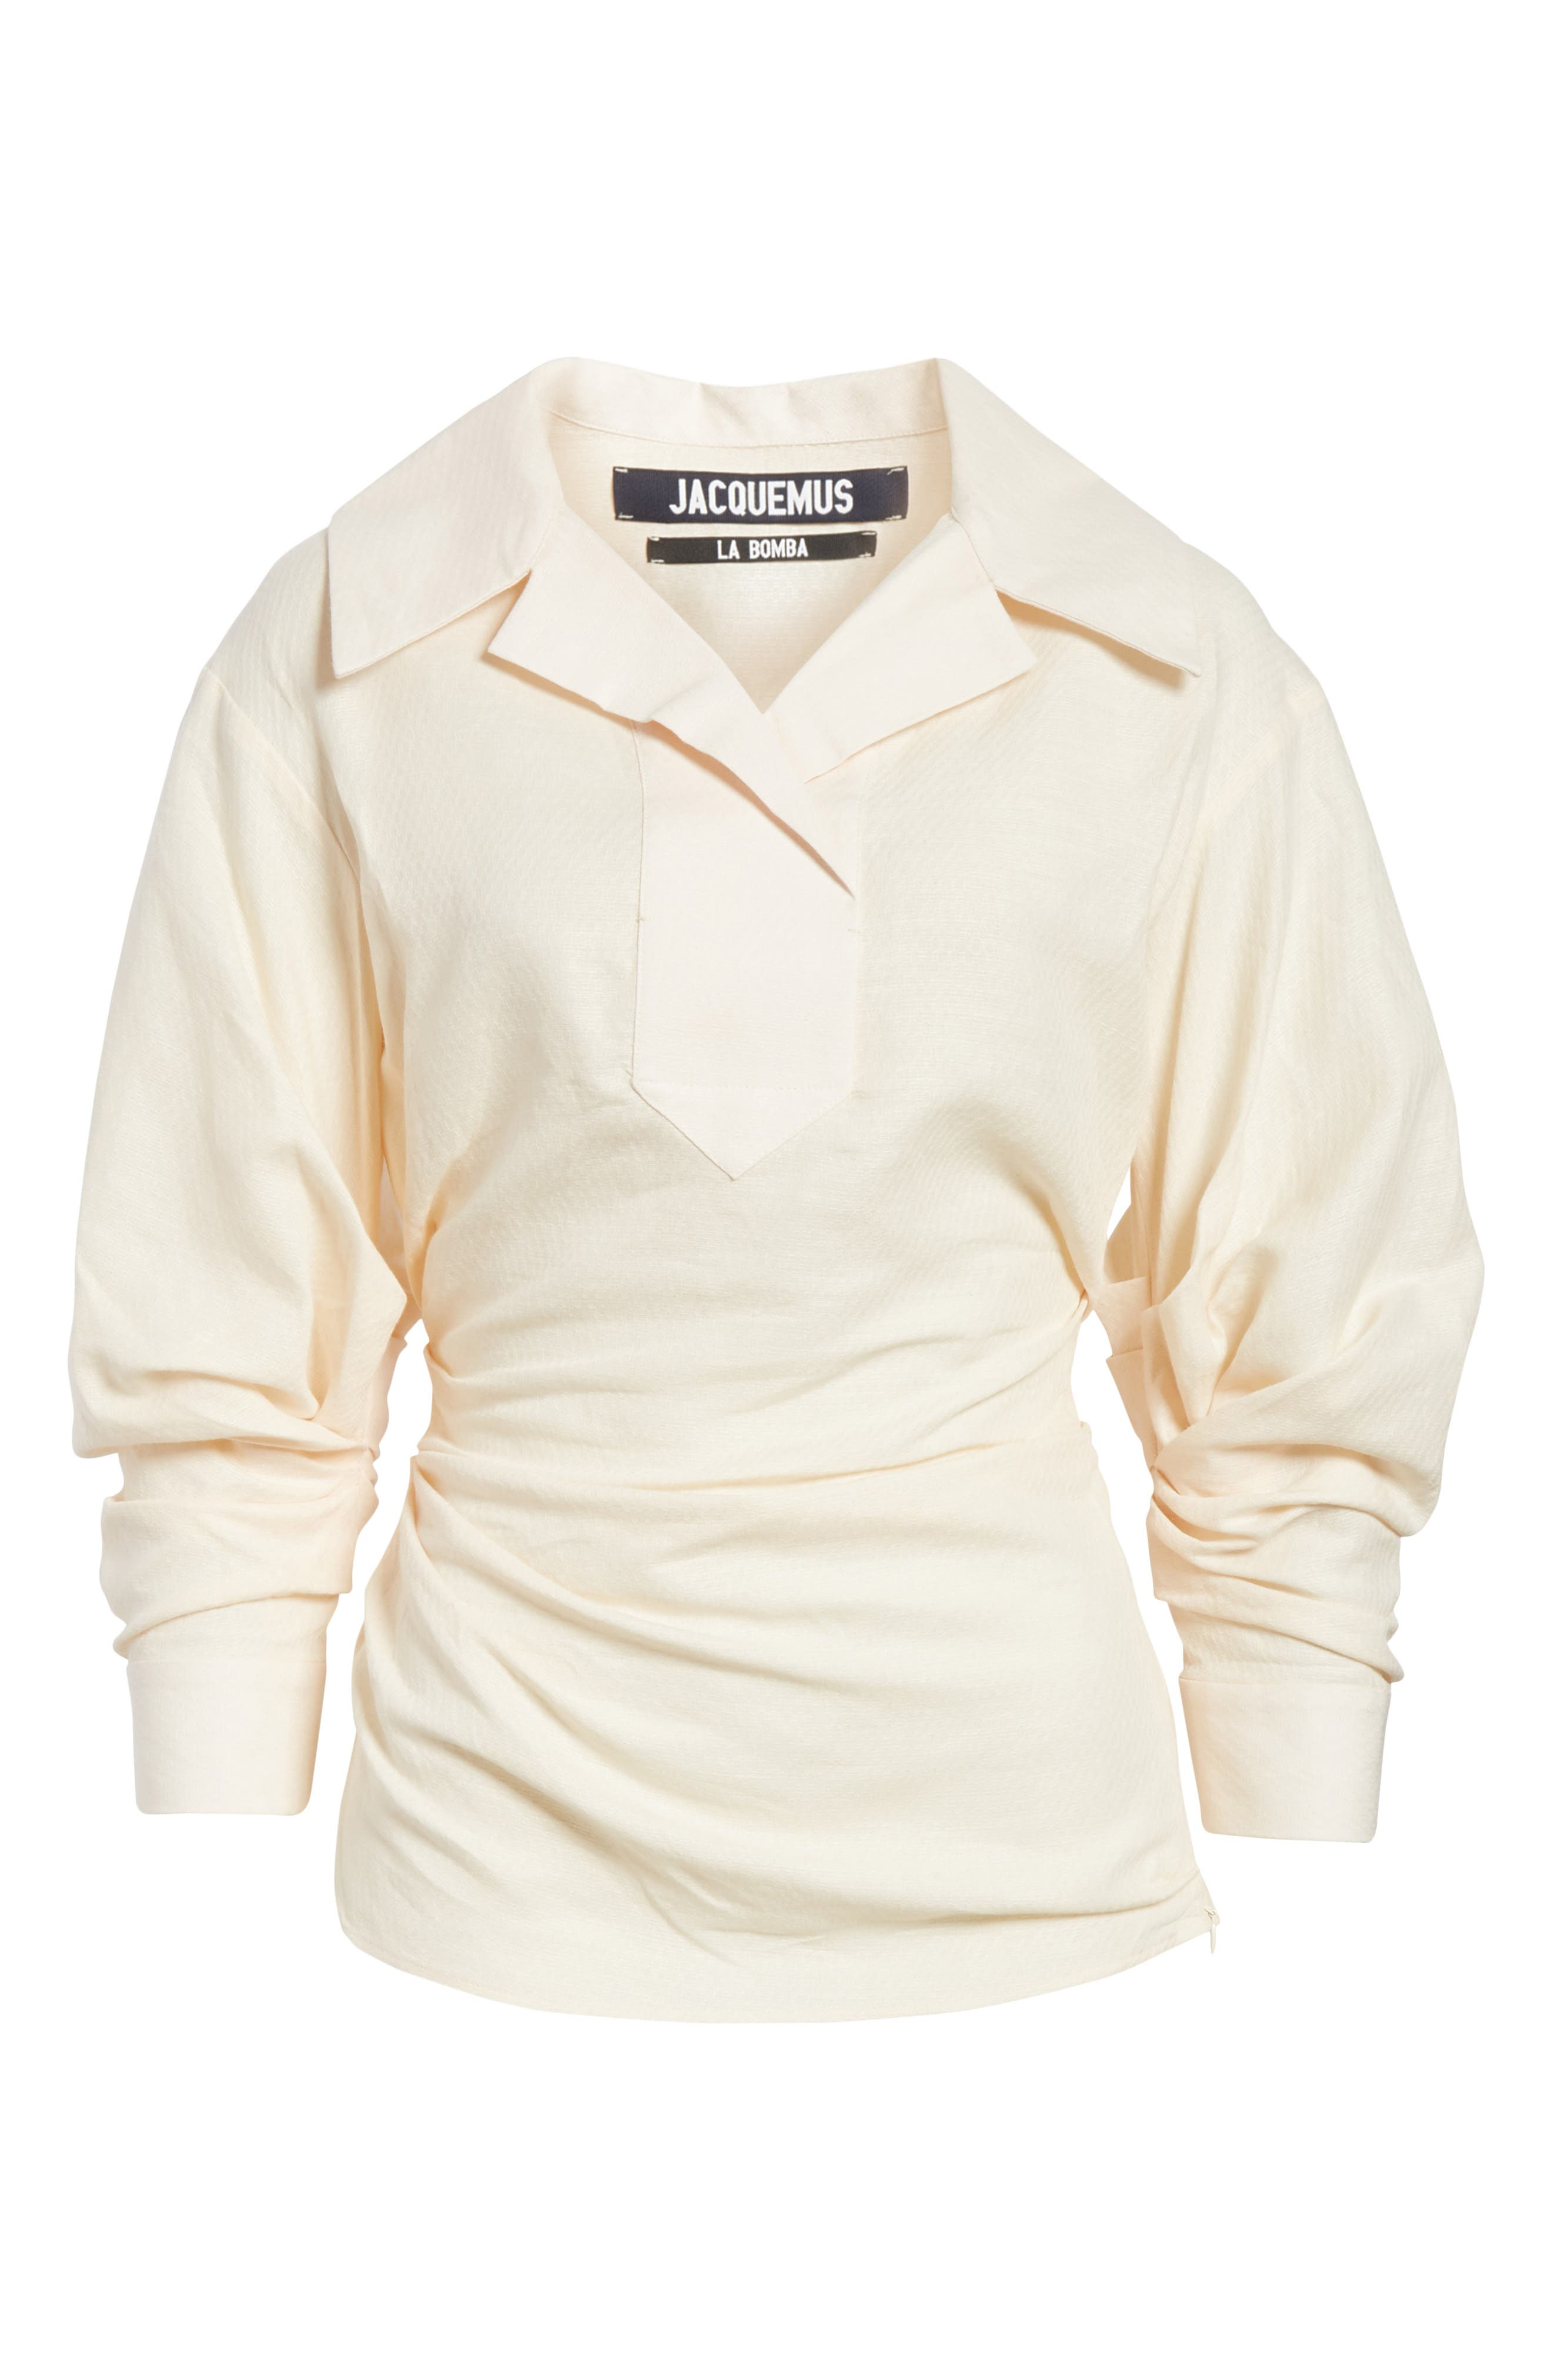 La Chemise Maceio Shirt,                             Alternate thumbnail 6, color,                             Beige